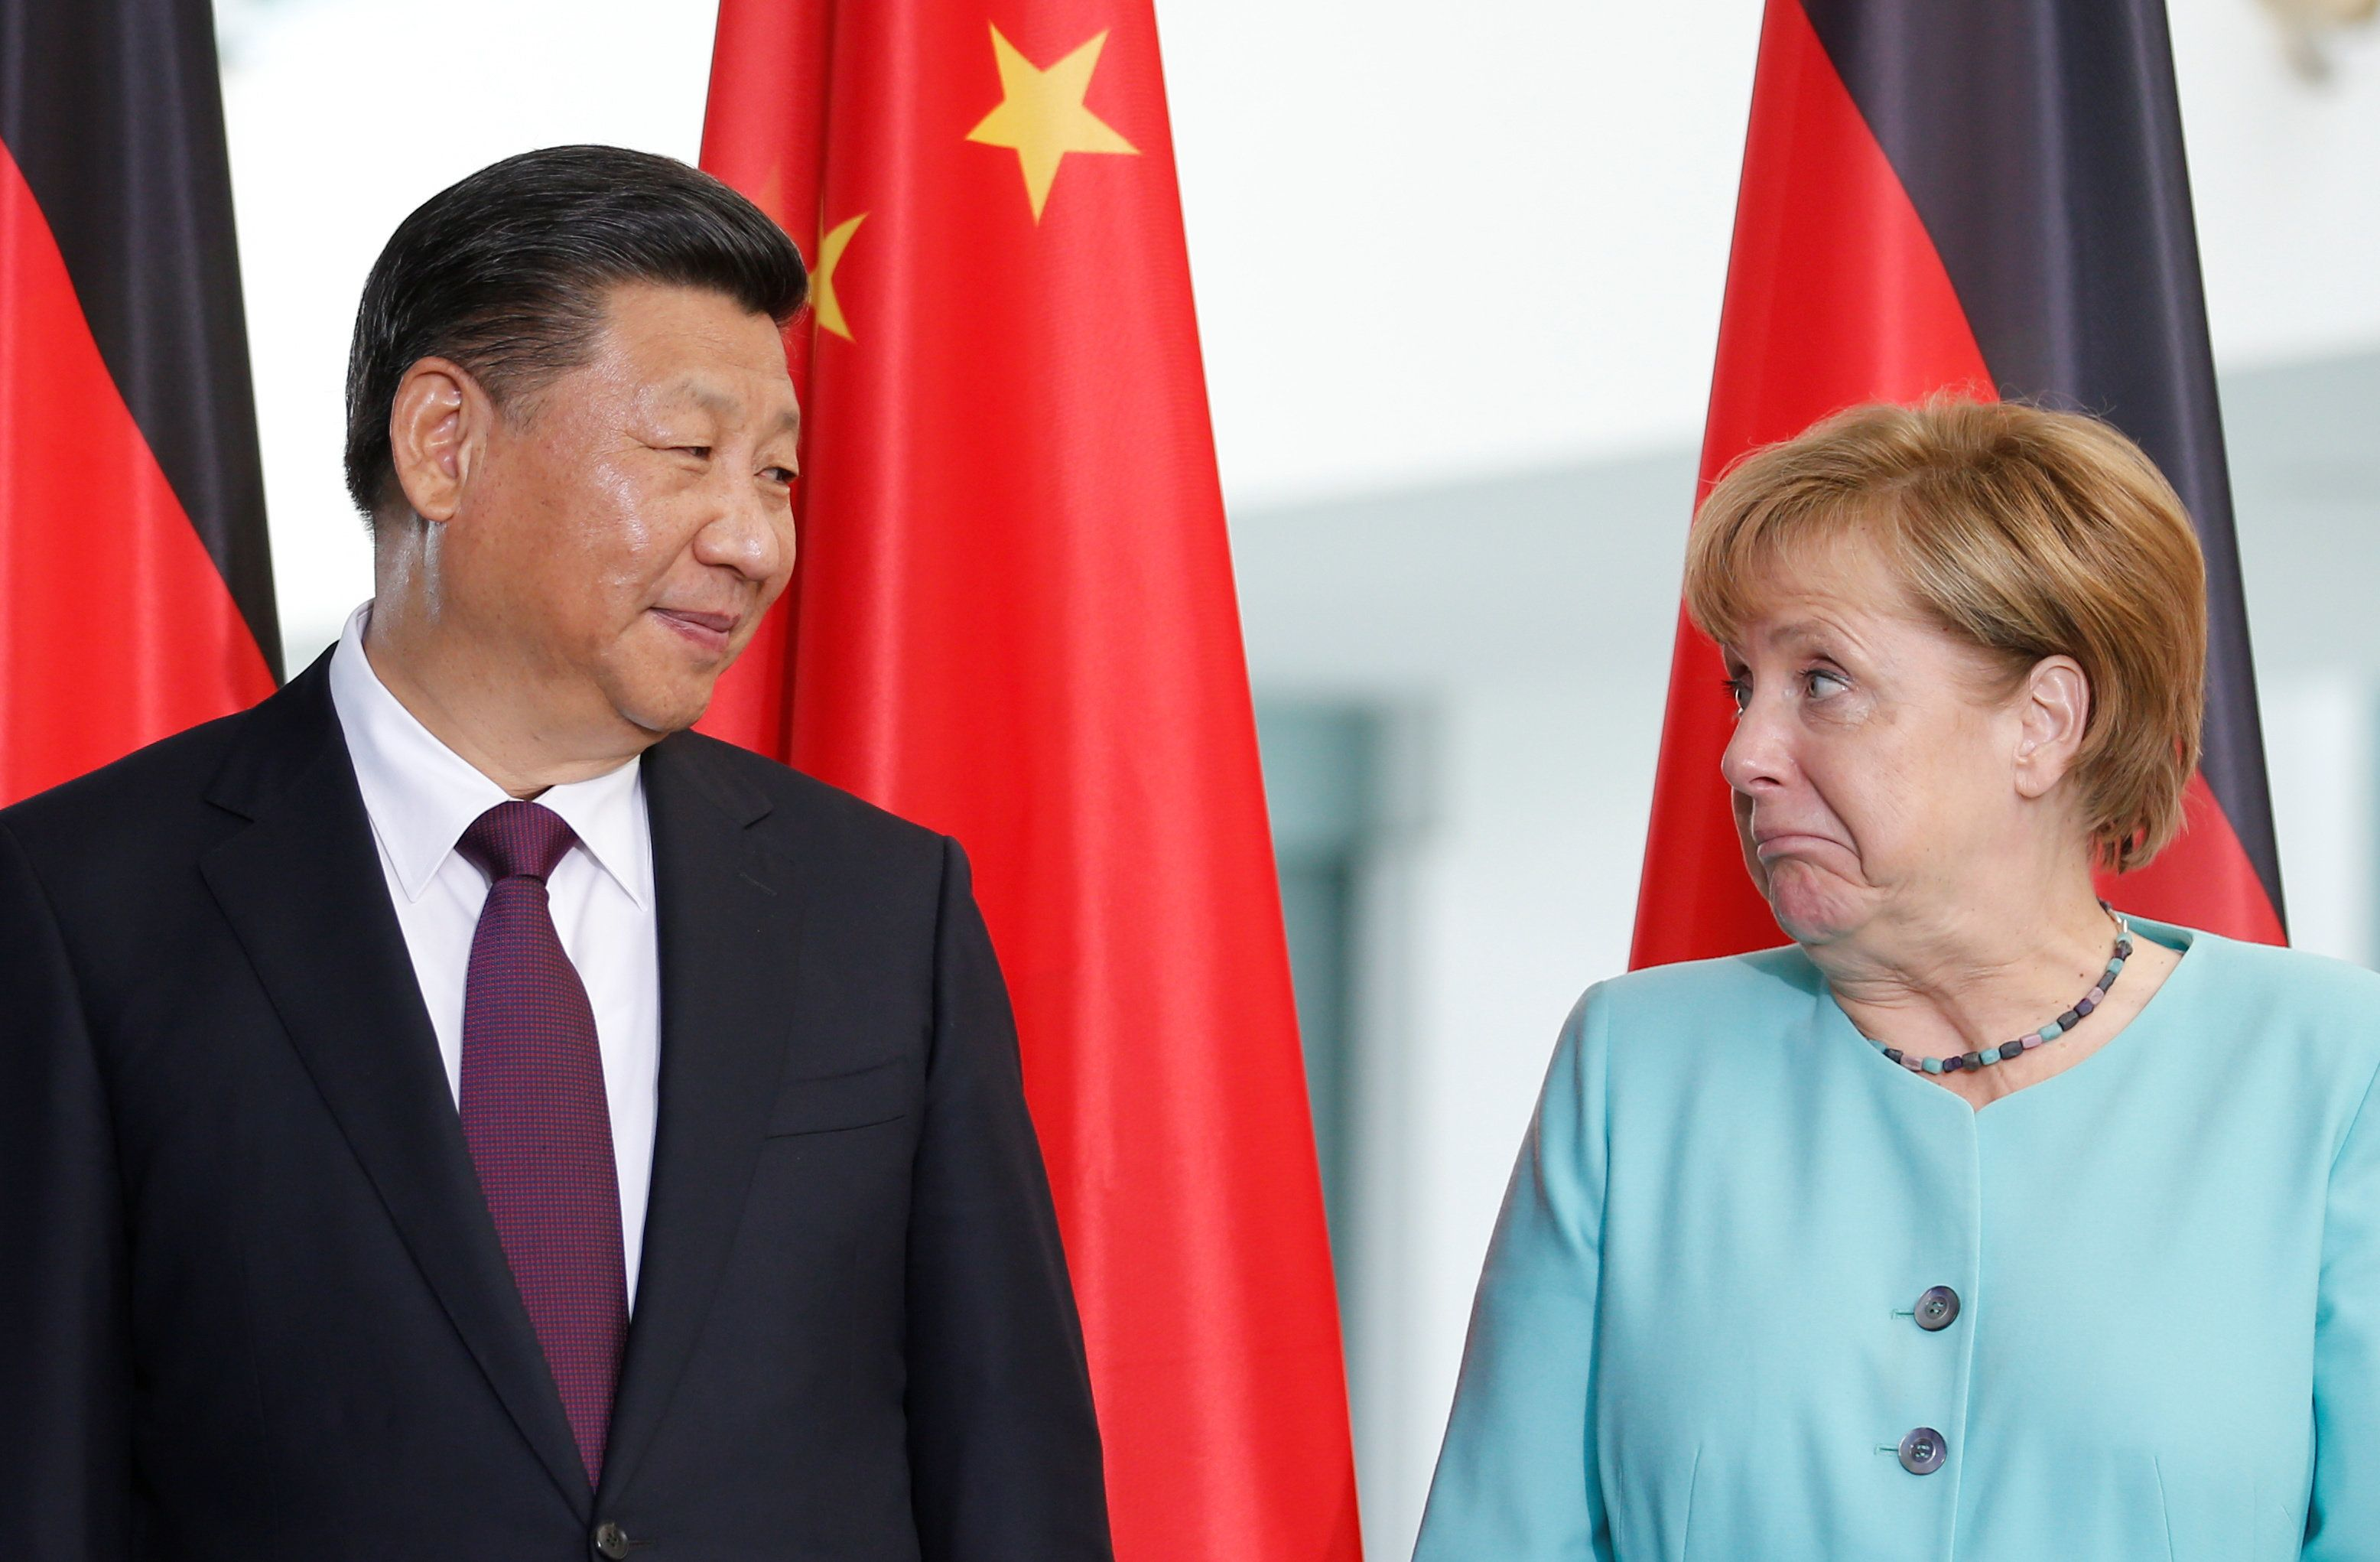 With America No Longer A 'Friend,' Merkel Looks To China As New